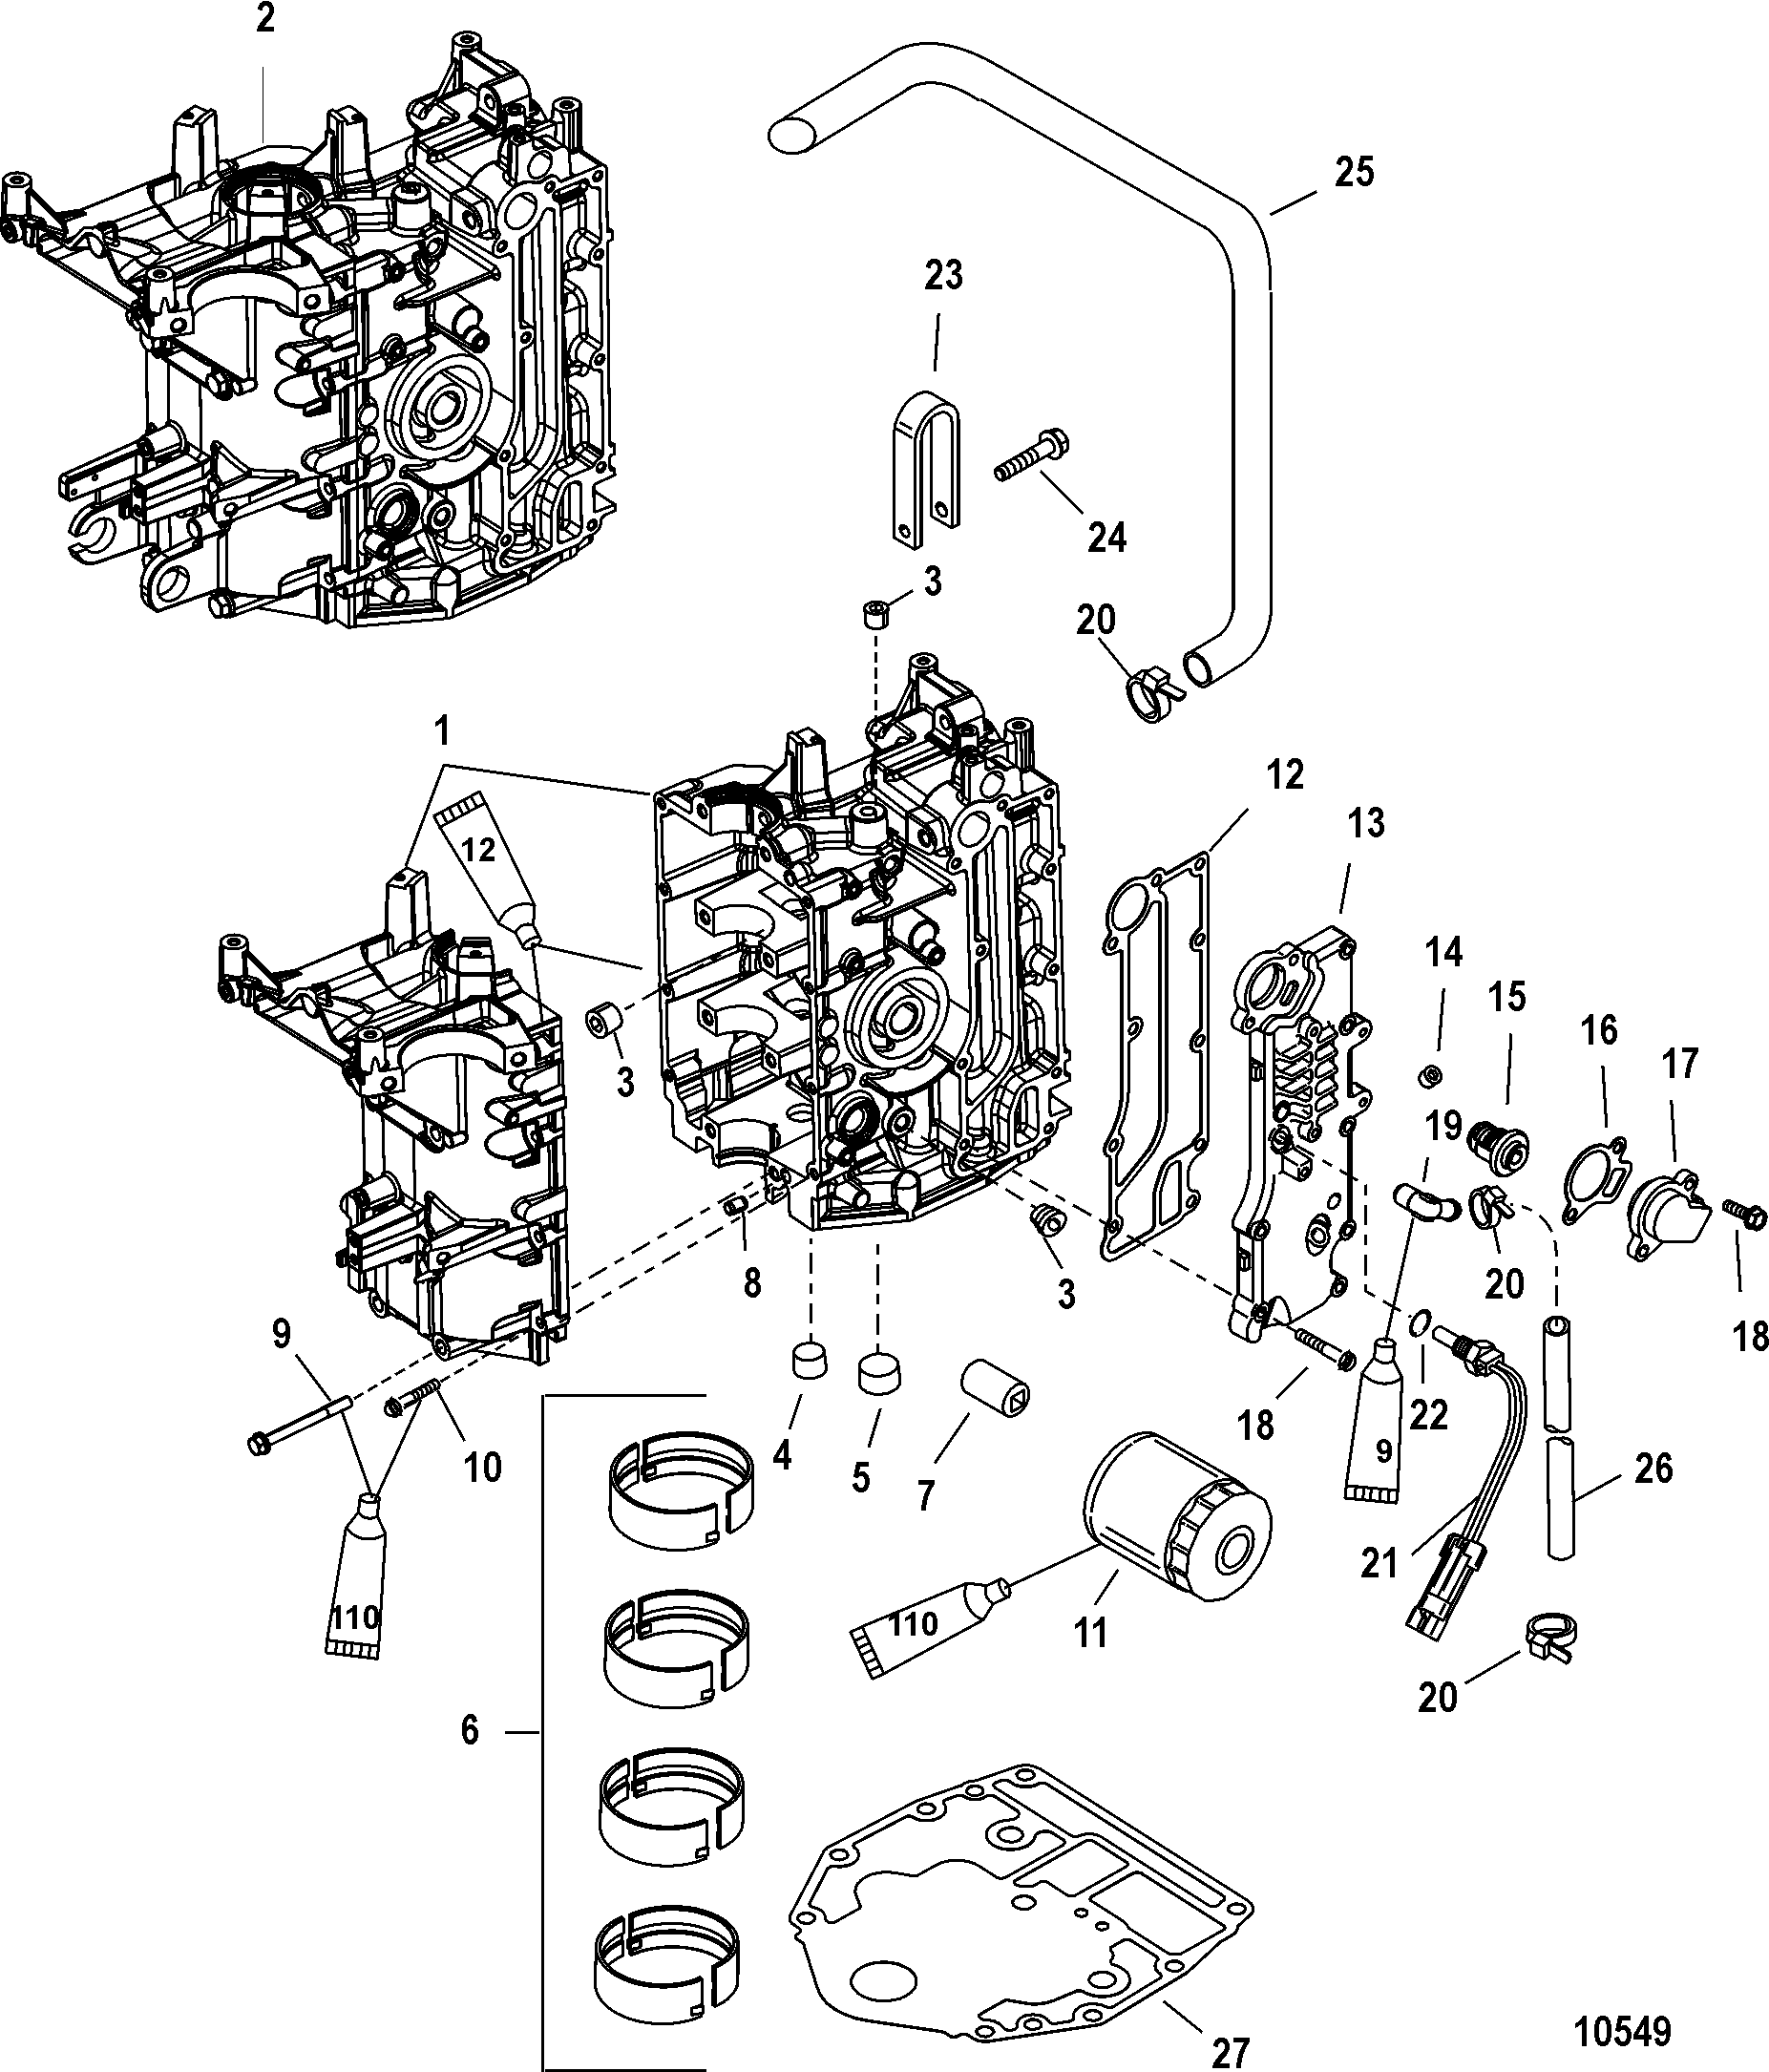 40 Hp Mercury Wiring Diagram